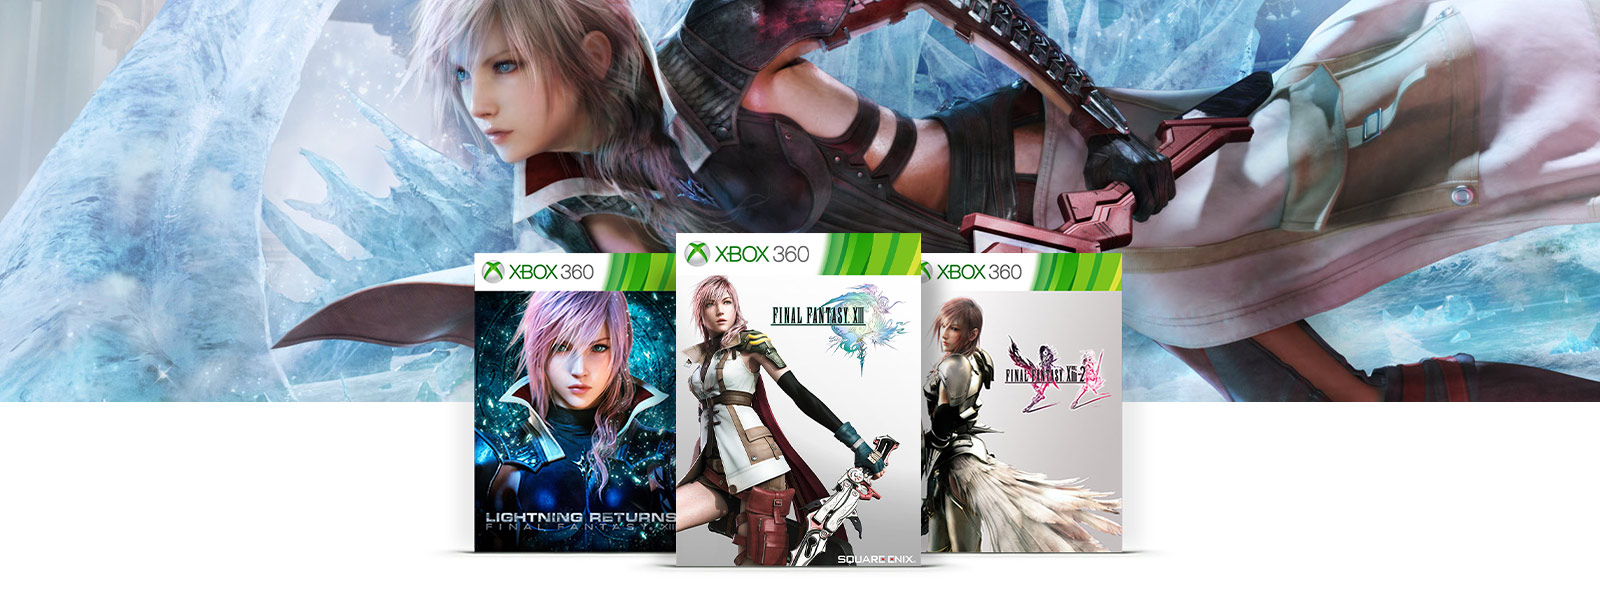 FINAL FANTASY XIII、FINAL FANTASY XIII-2 和 LIGHTNING RETURNS FINAL FANTASY 的包裝盒圖案,底下是角色 Lightning